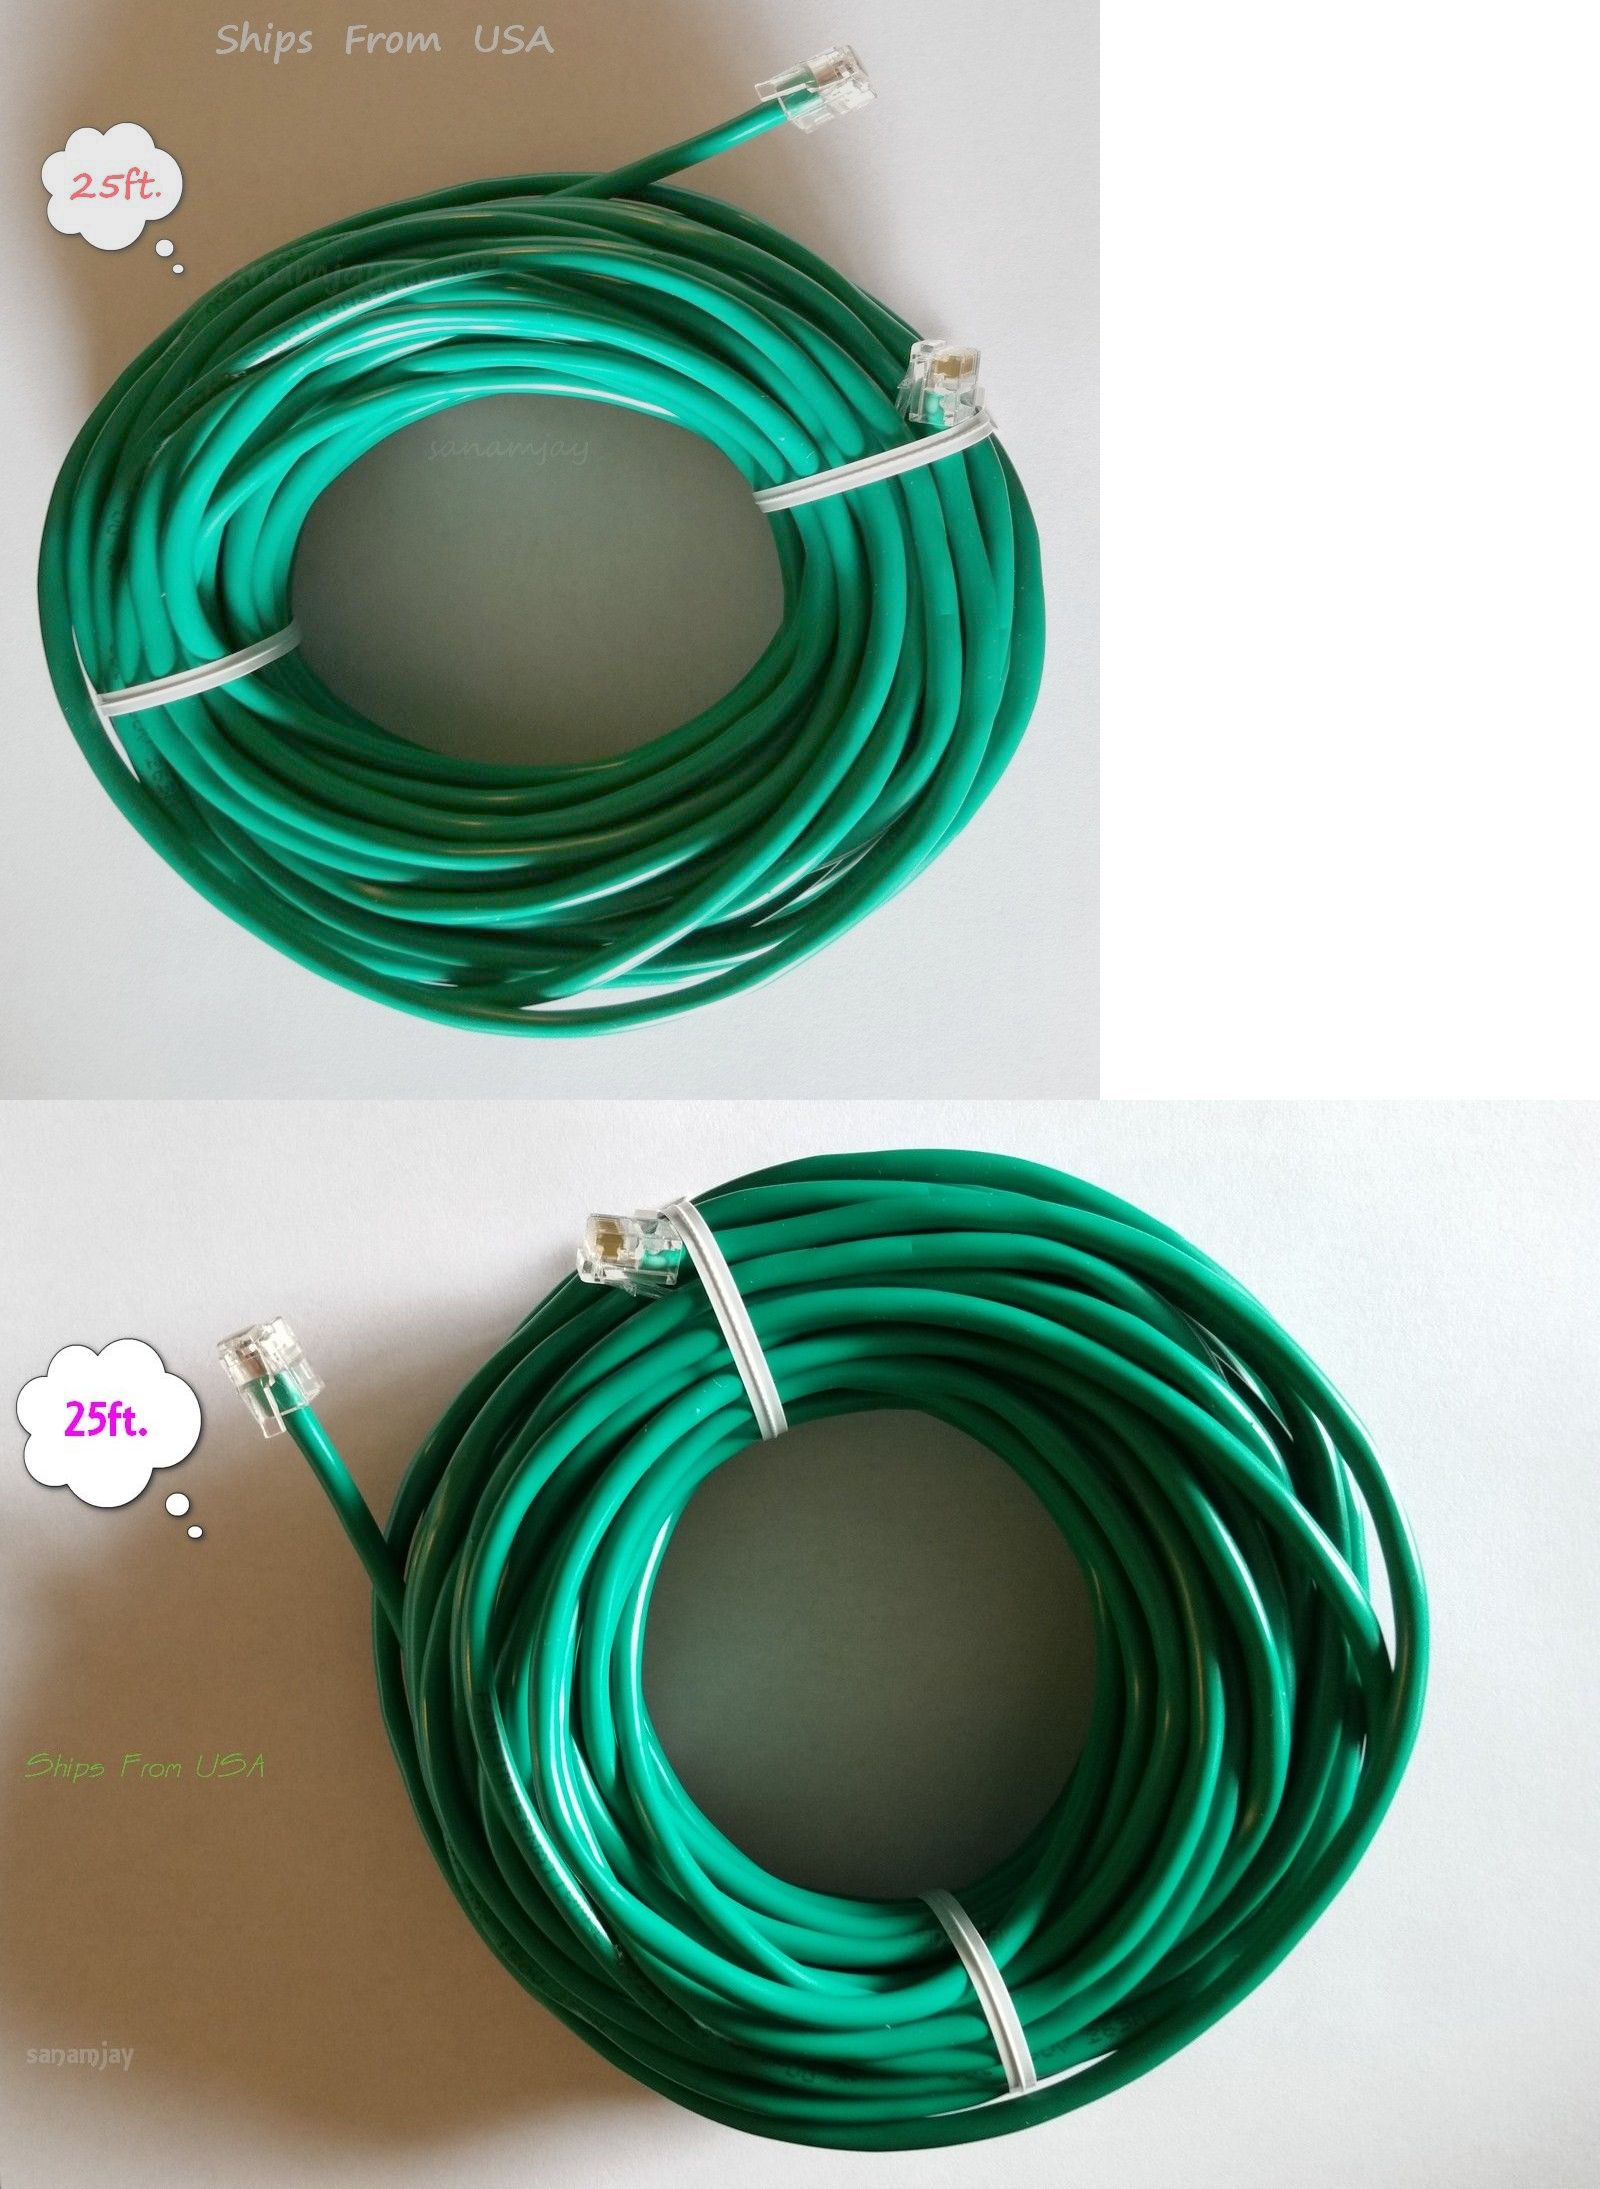 dsl phone cables rj 11 67857 25ft rj11 rj12 cat5e green dsl telephone data cable for centurylink atandt etc buy it now only 11 99 on ebay phone  [ 1600 x 2189 Pixel ]